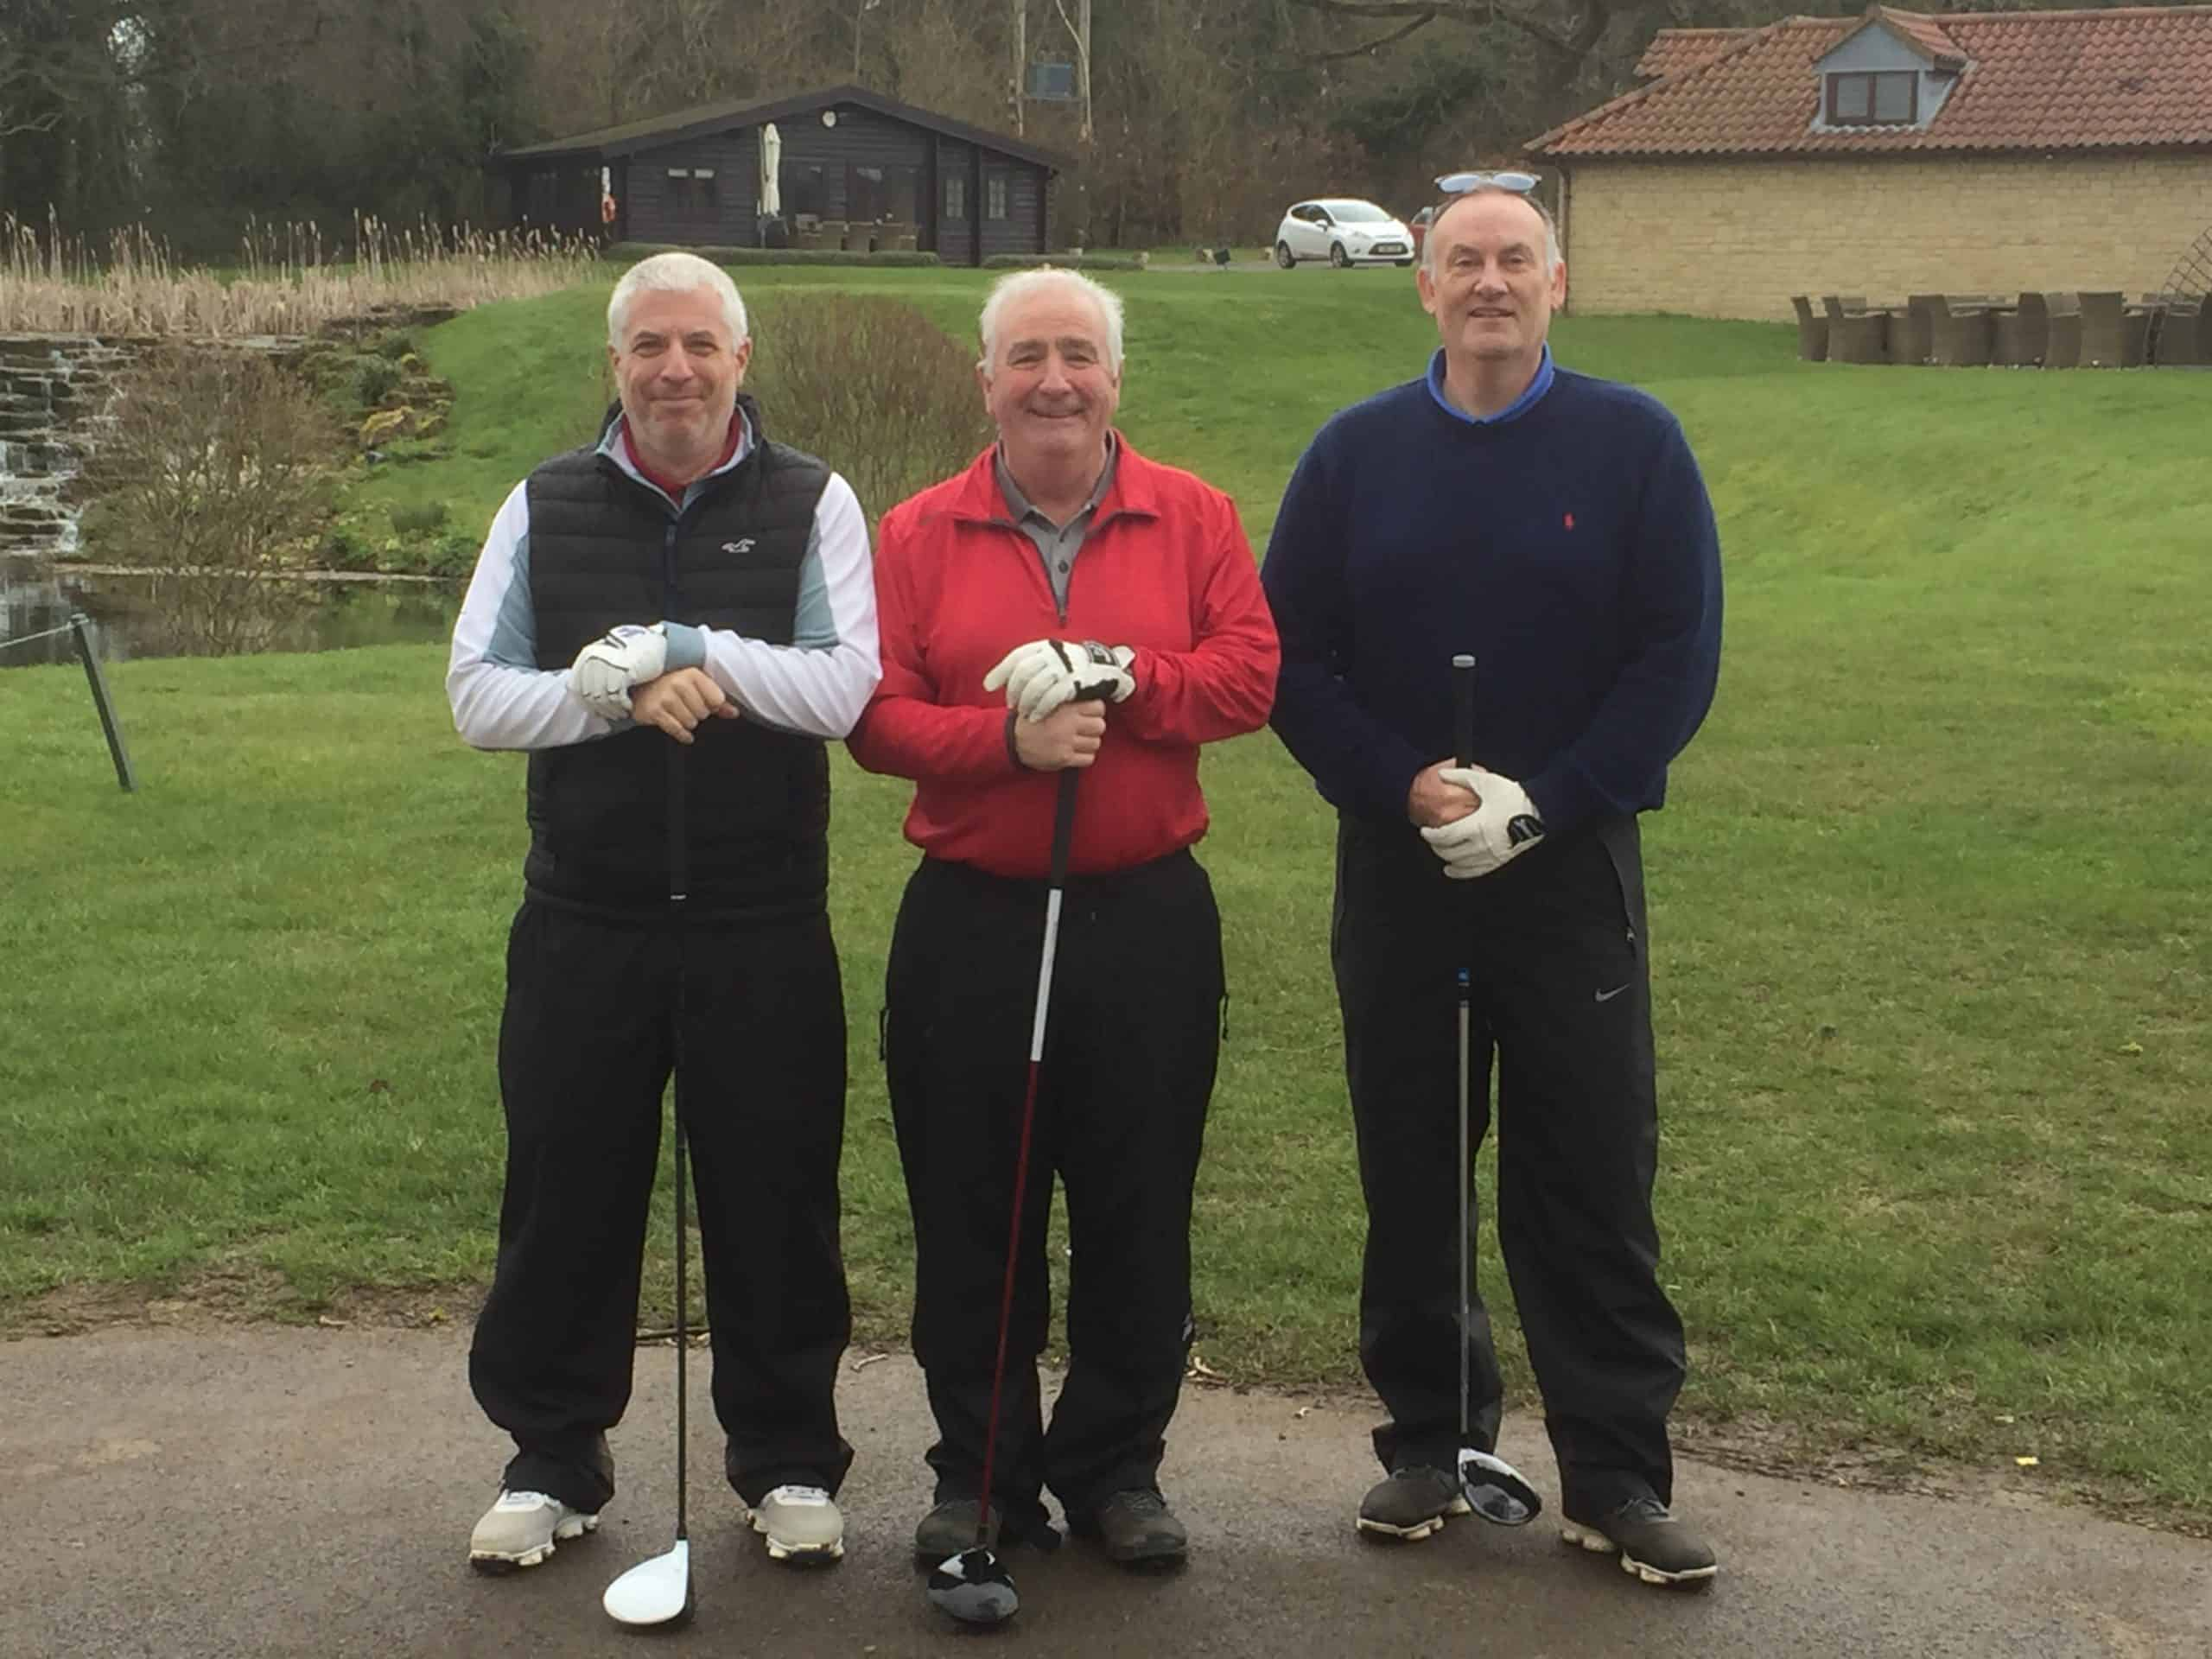 Chris Jeffcutt, Roger Chequer & Mark Mumford were the first players to play on the Fore King Golf Tour